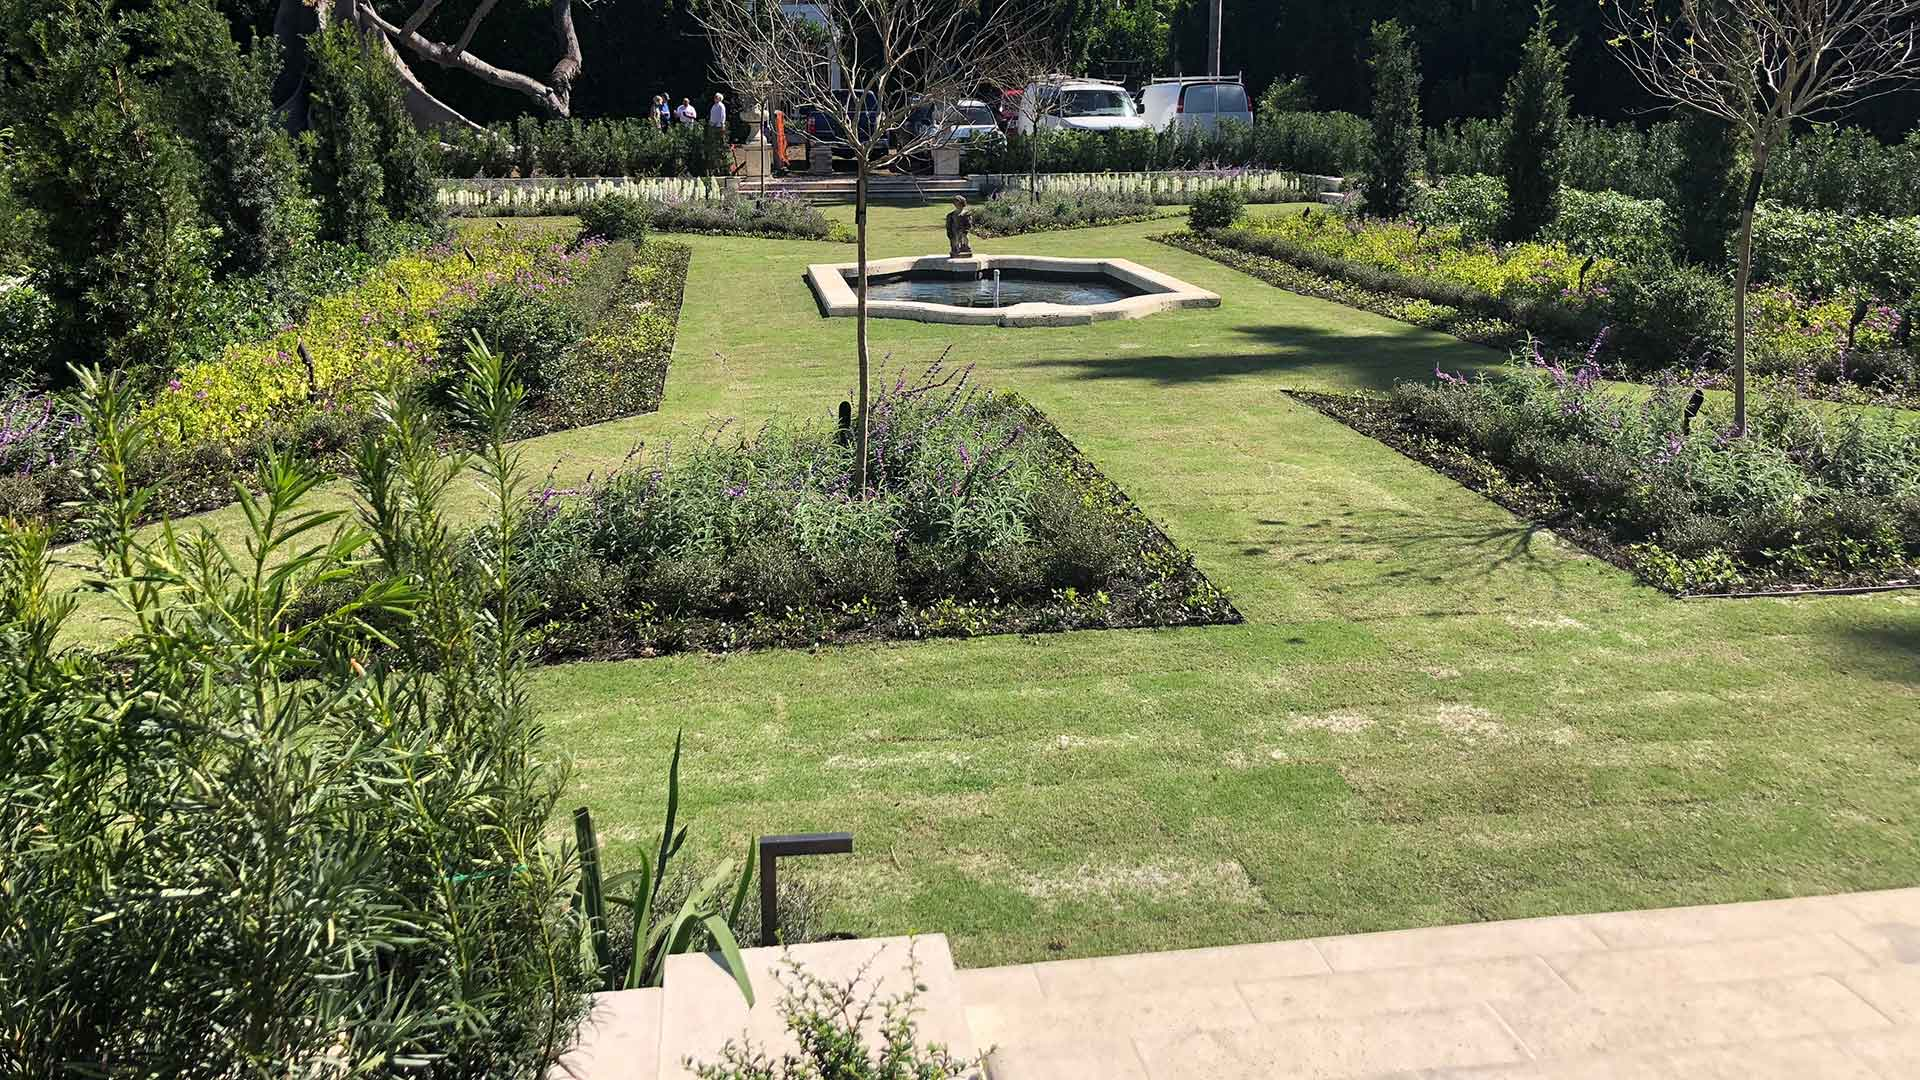 Installing Beautiful Custom Landscapes For Luxury Residential And  Commercial Properties Is What Weu0027re Experts At Here At Greenscape Design.